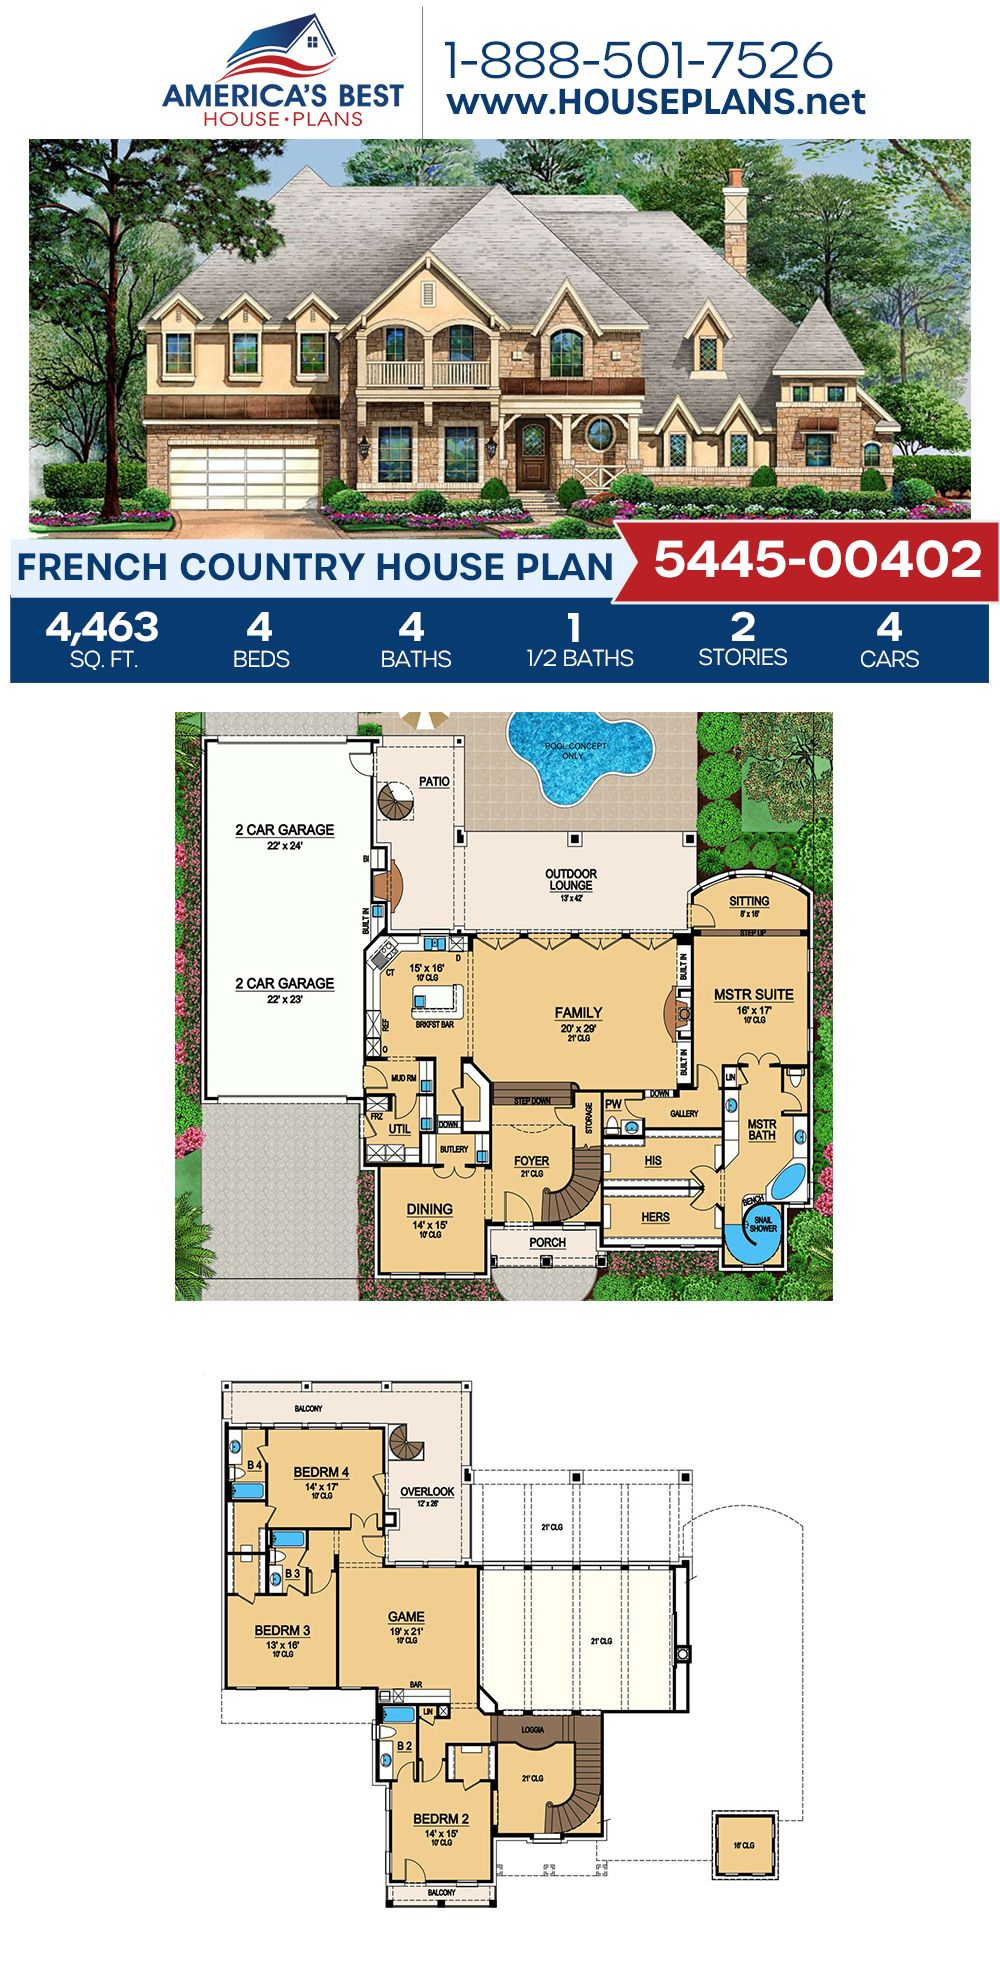 House Plan 5445 00402 French Country Plan 4 463 Square Feet 4 Bedrooms 4 5 Bathrooms In 2021 French Country House Plans French Country House House Plans Australia